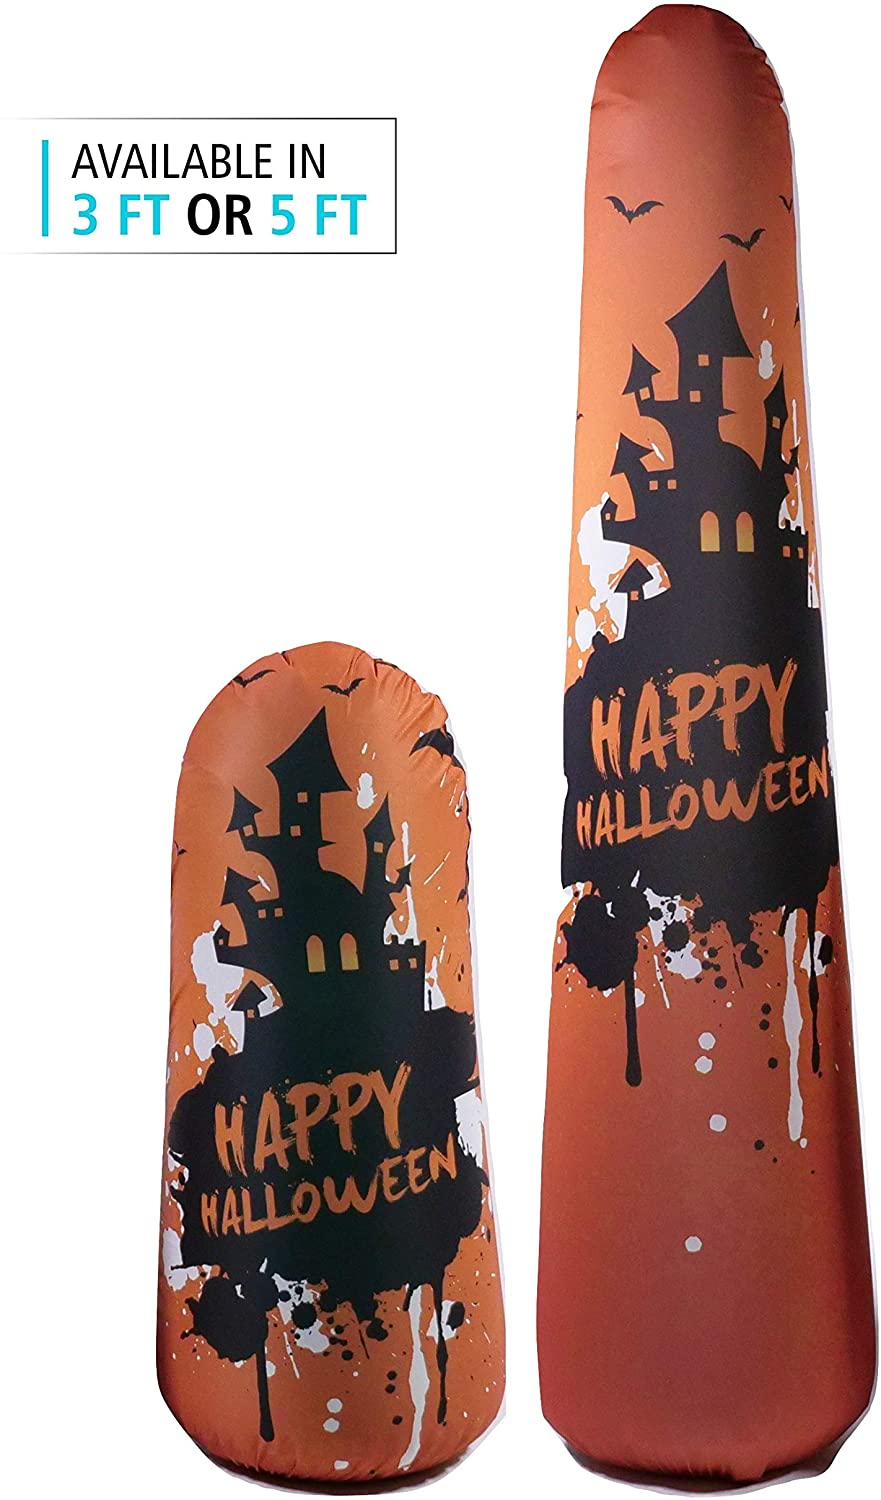 BONK FIT High Performance Polyurethane Kids Inflatable Punching Bag Bop Toy PVC-Free with Machine Washable Designer Cover - Haunted House, 5ft